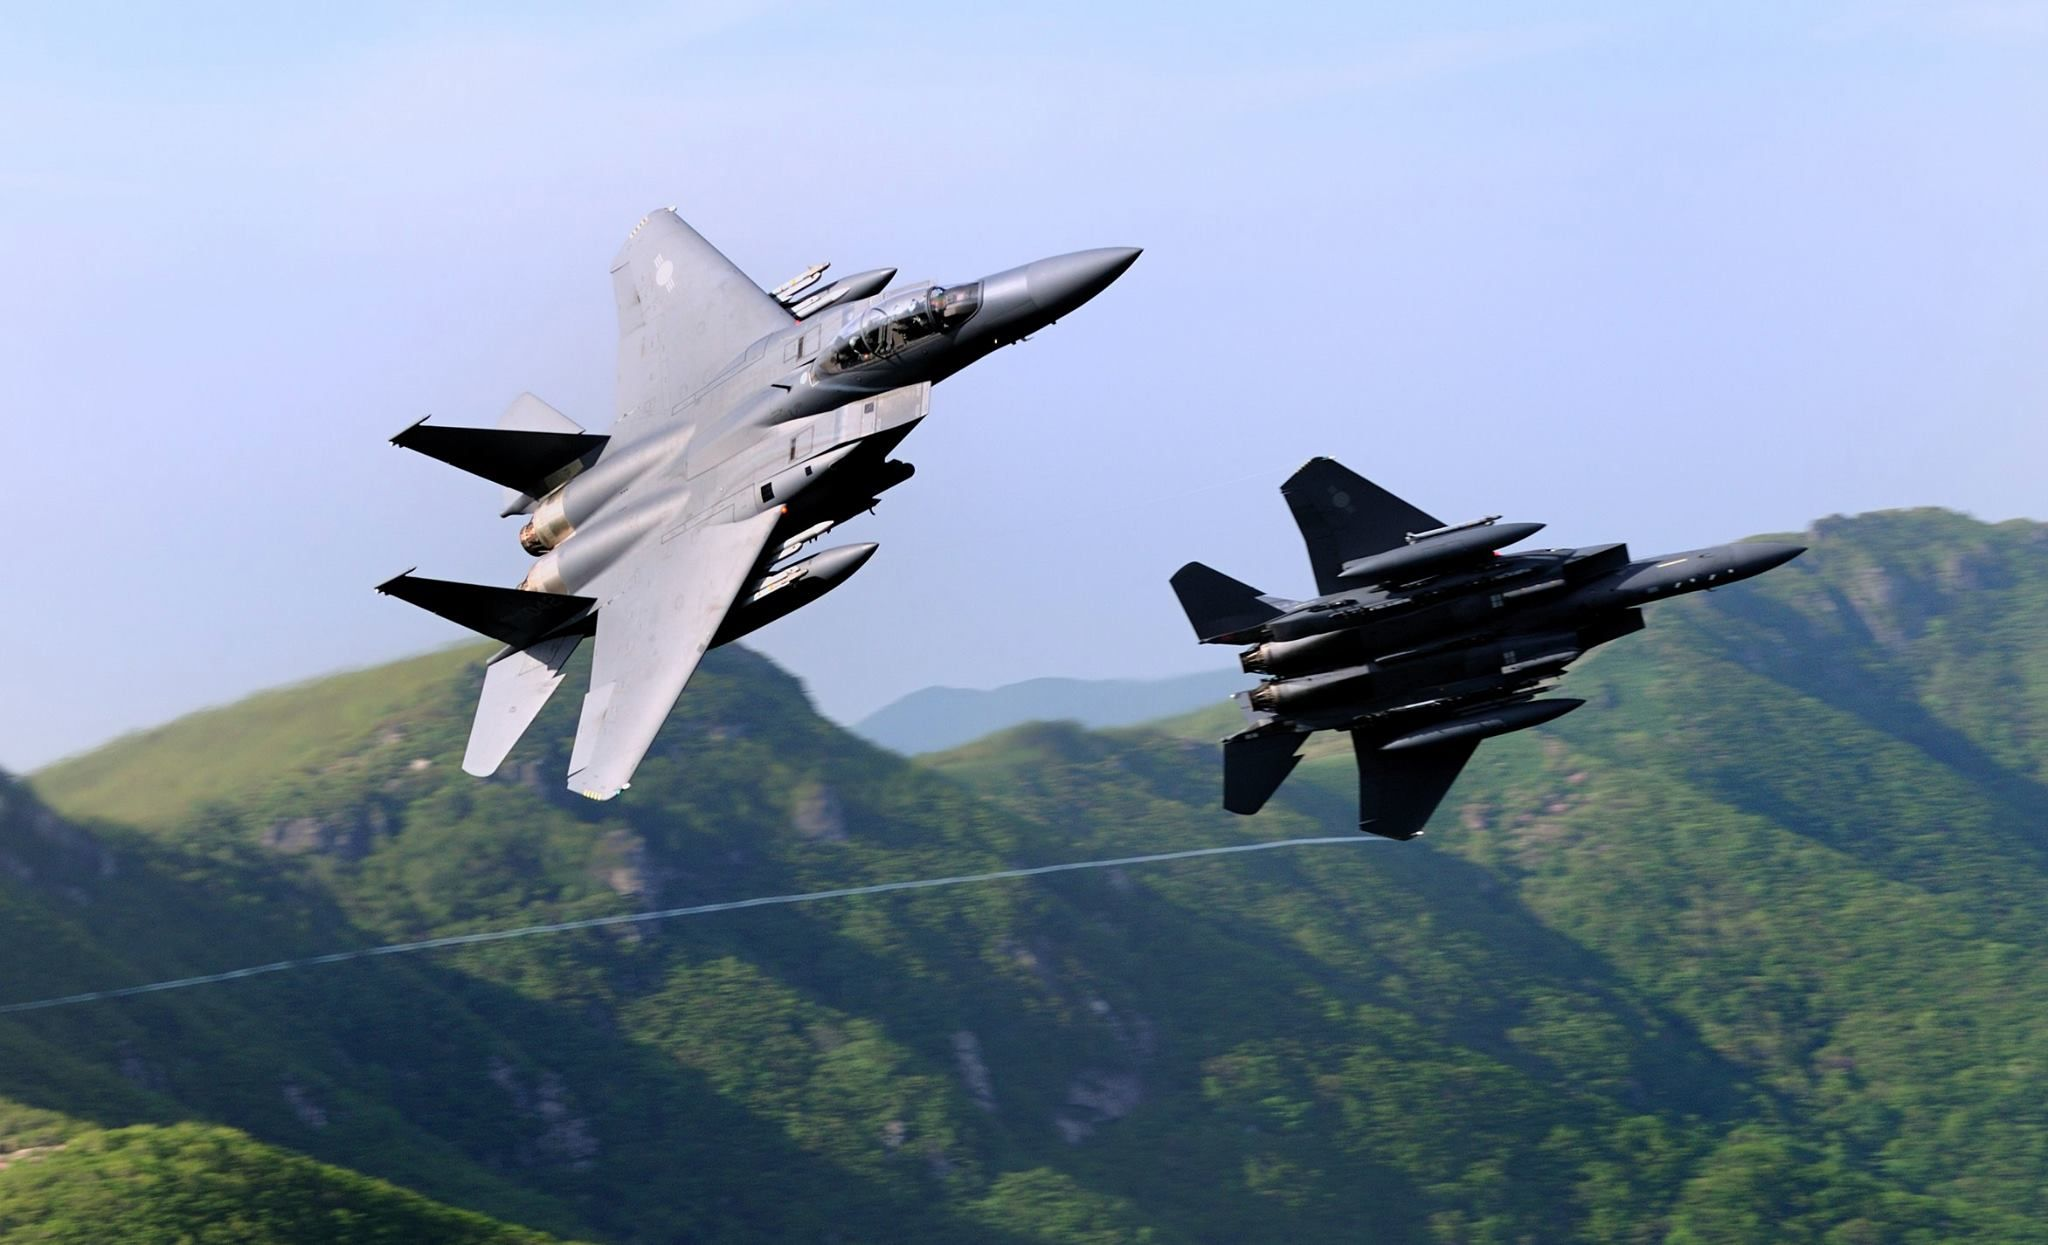 ROK Air Force F 15K Slam Eagles [2048 x 1245] wallpaper 2048x1245